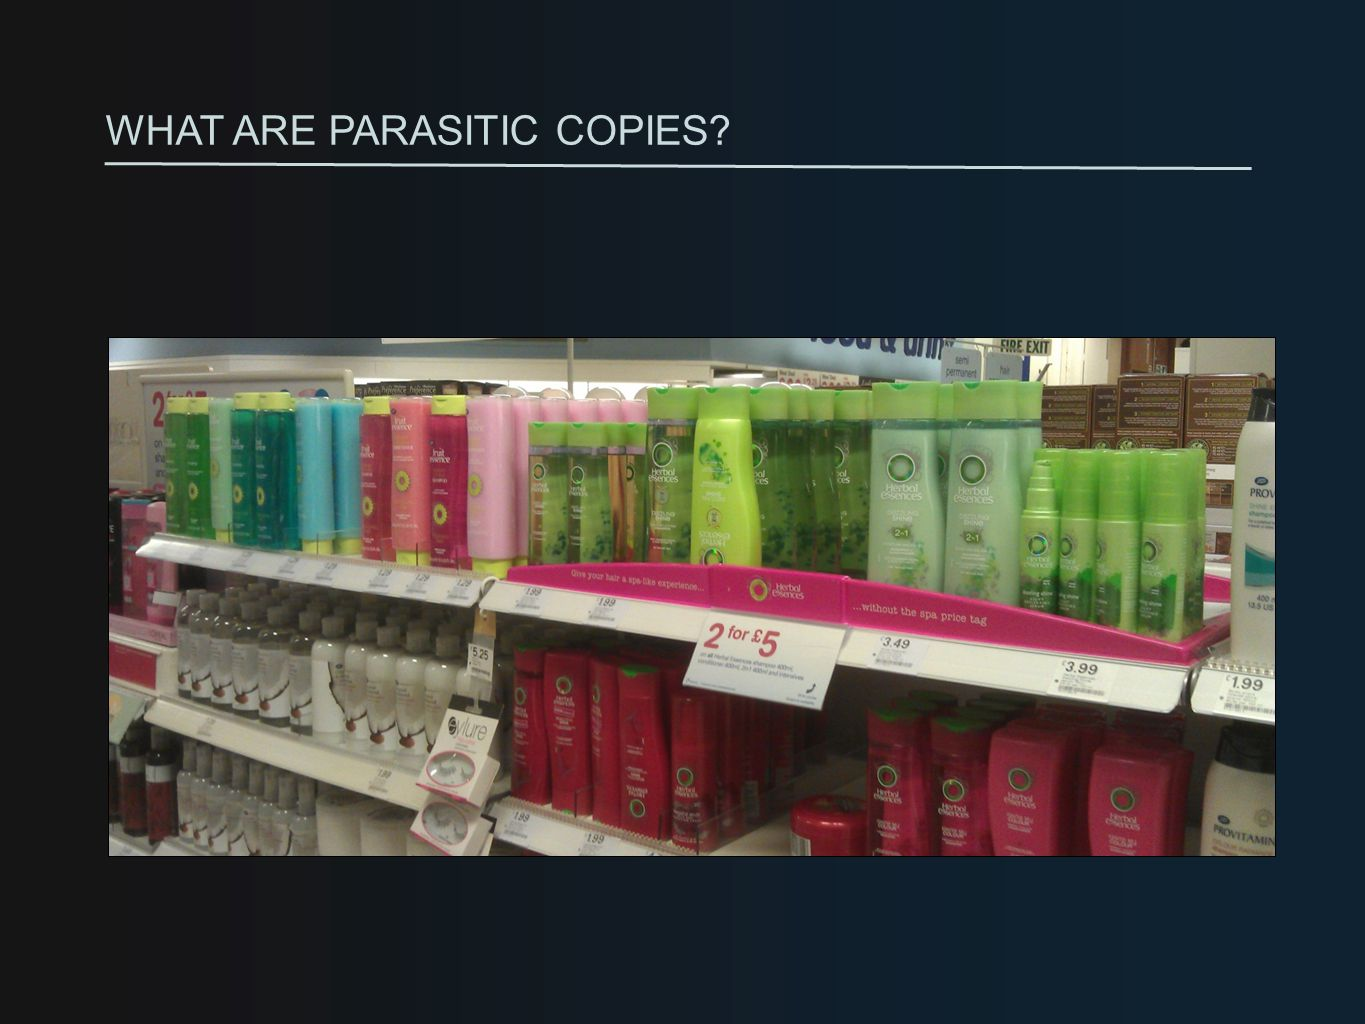 Distinctive designs with shelf-standout get noticed by consumers.